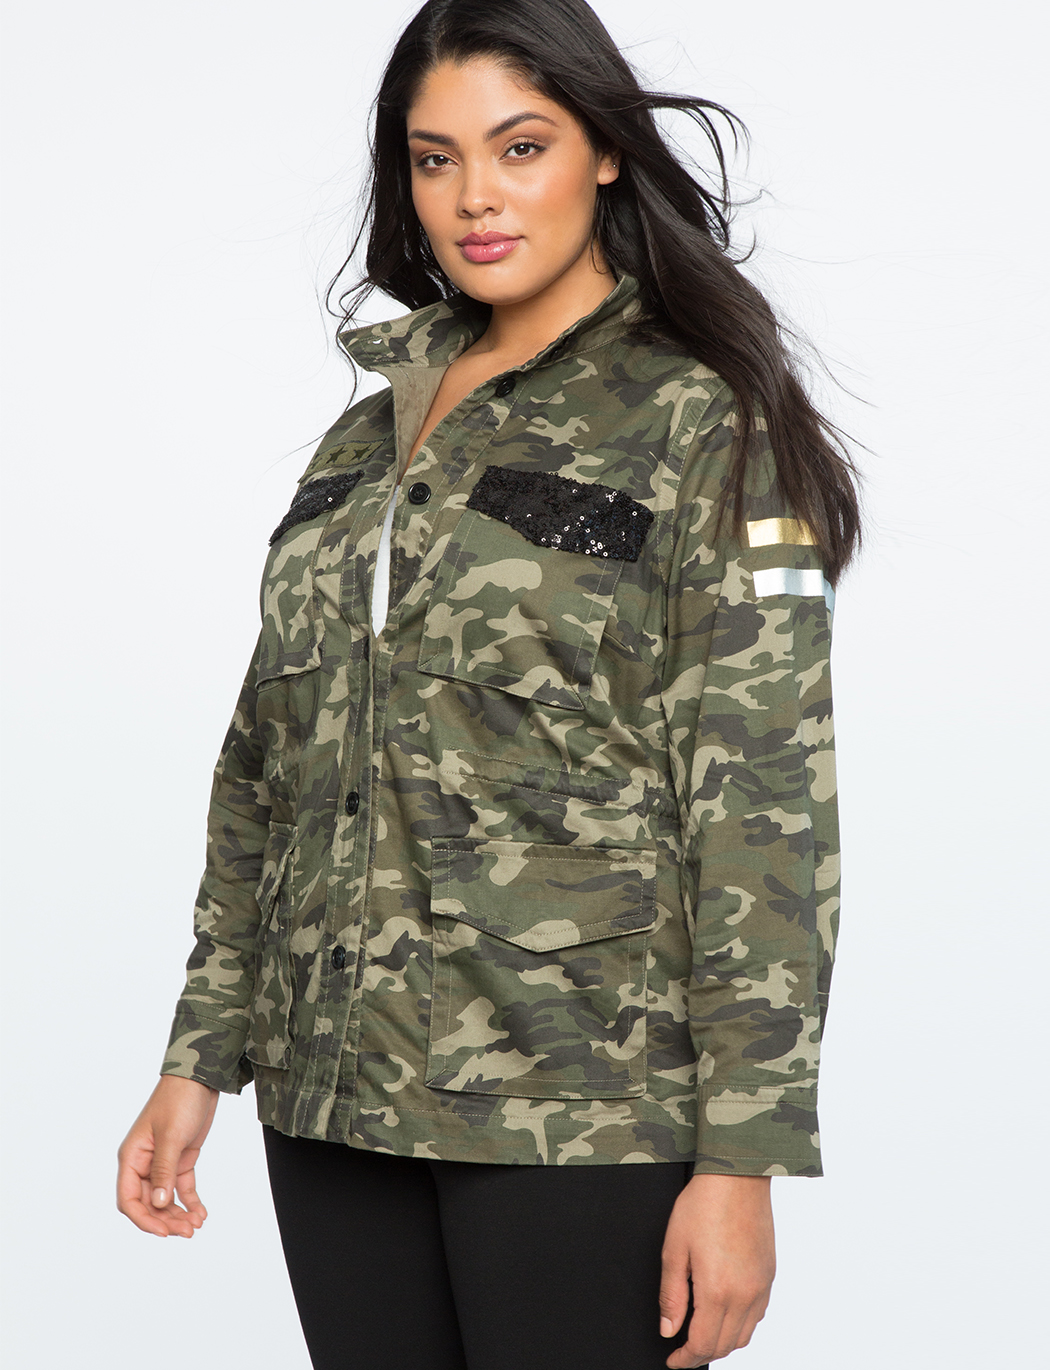 1b61c10674dee Camo Sequin Jacket | Women's Plus Size Coats + Jackets | ELOQUII